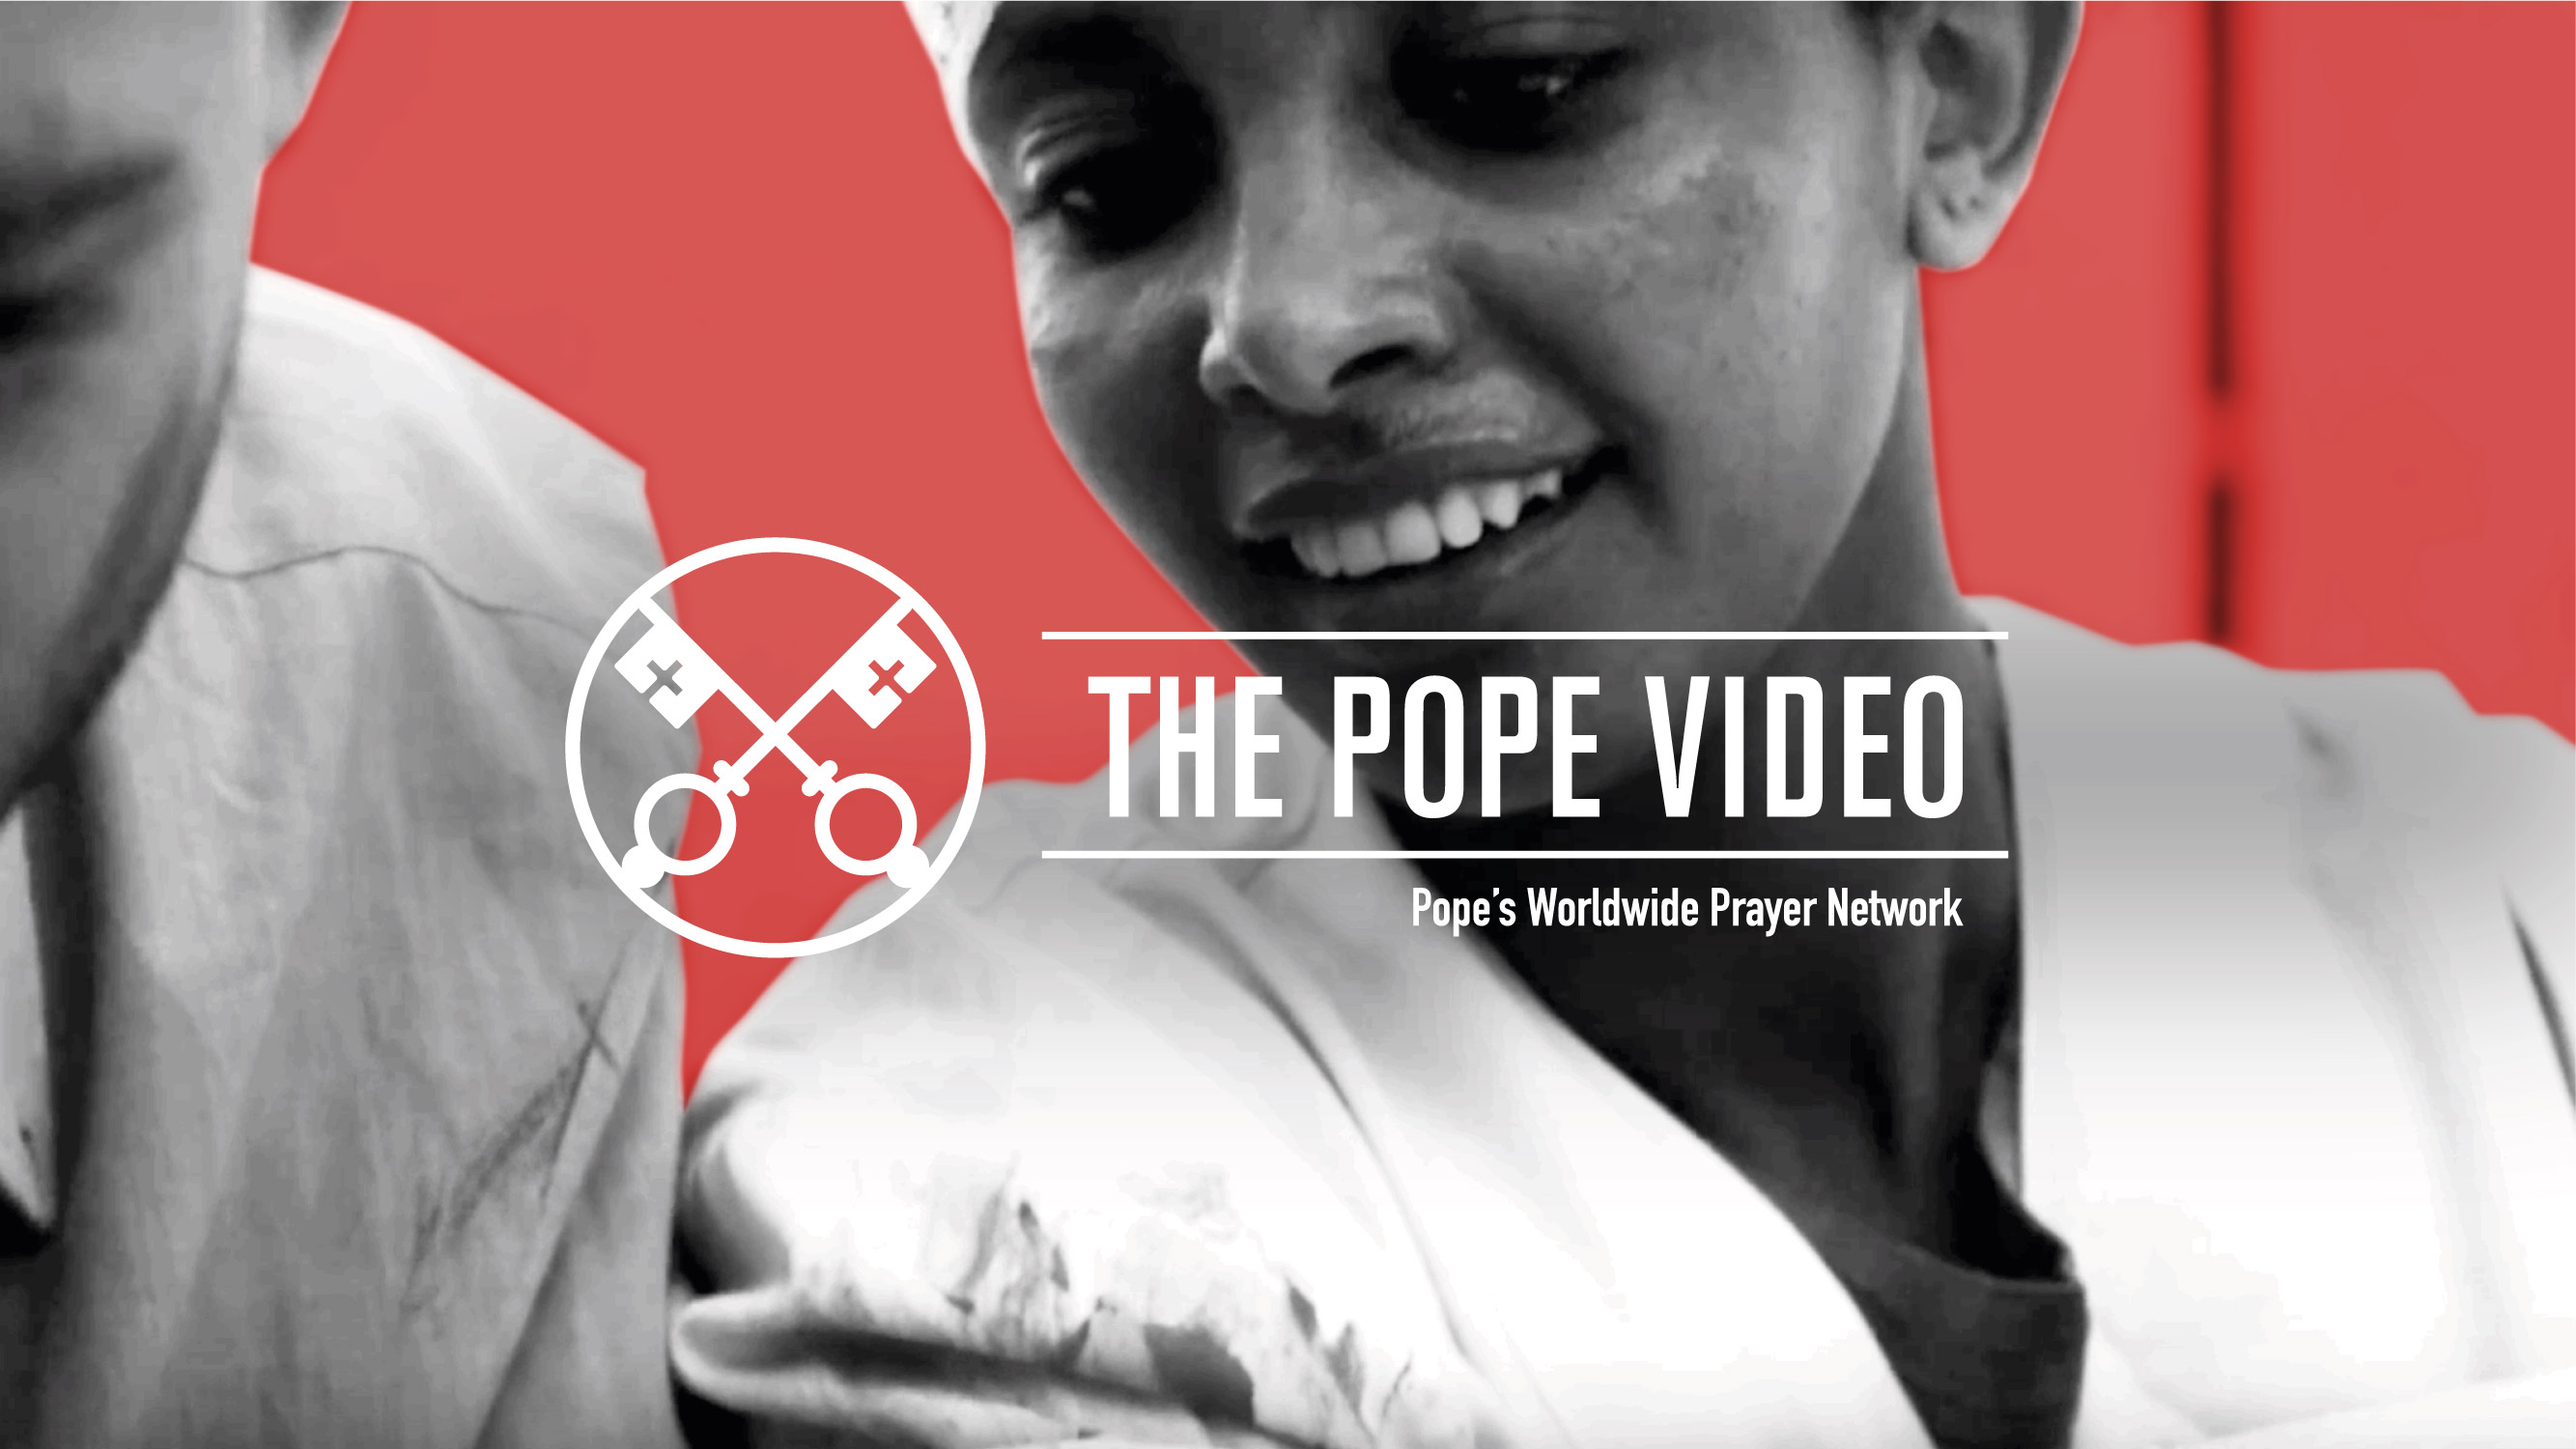 The Pope Video April 2019 (Official Image)